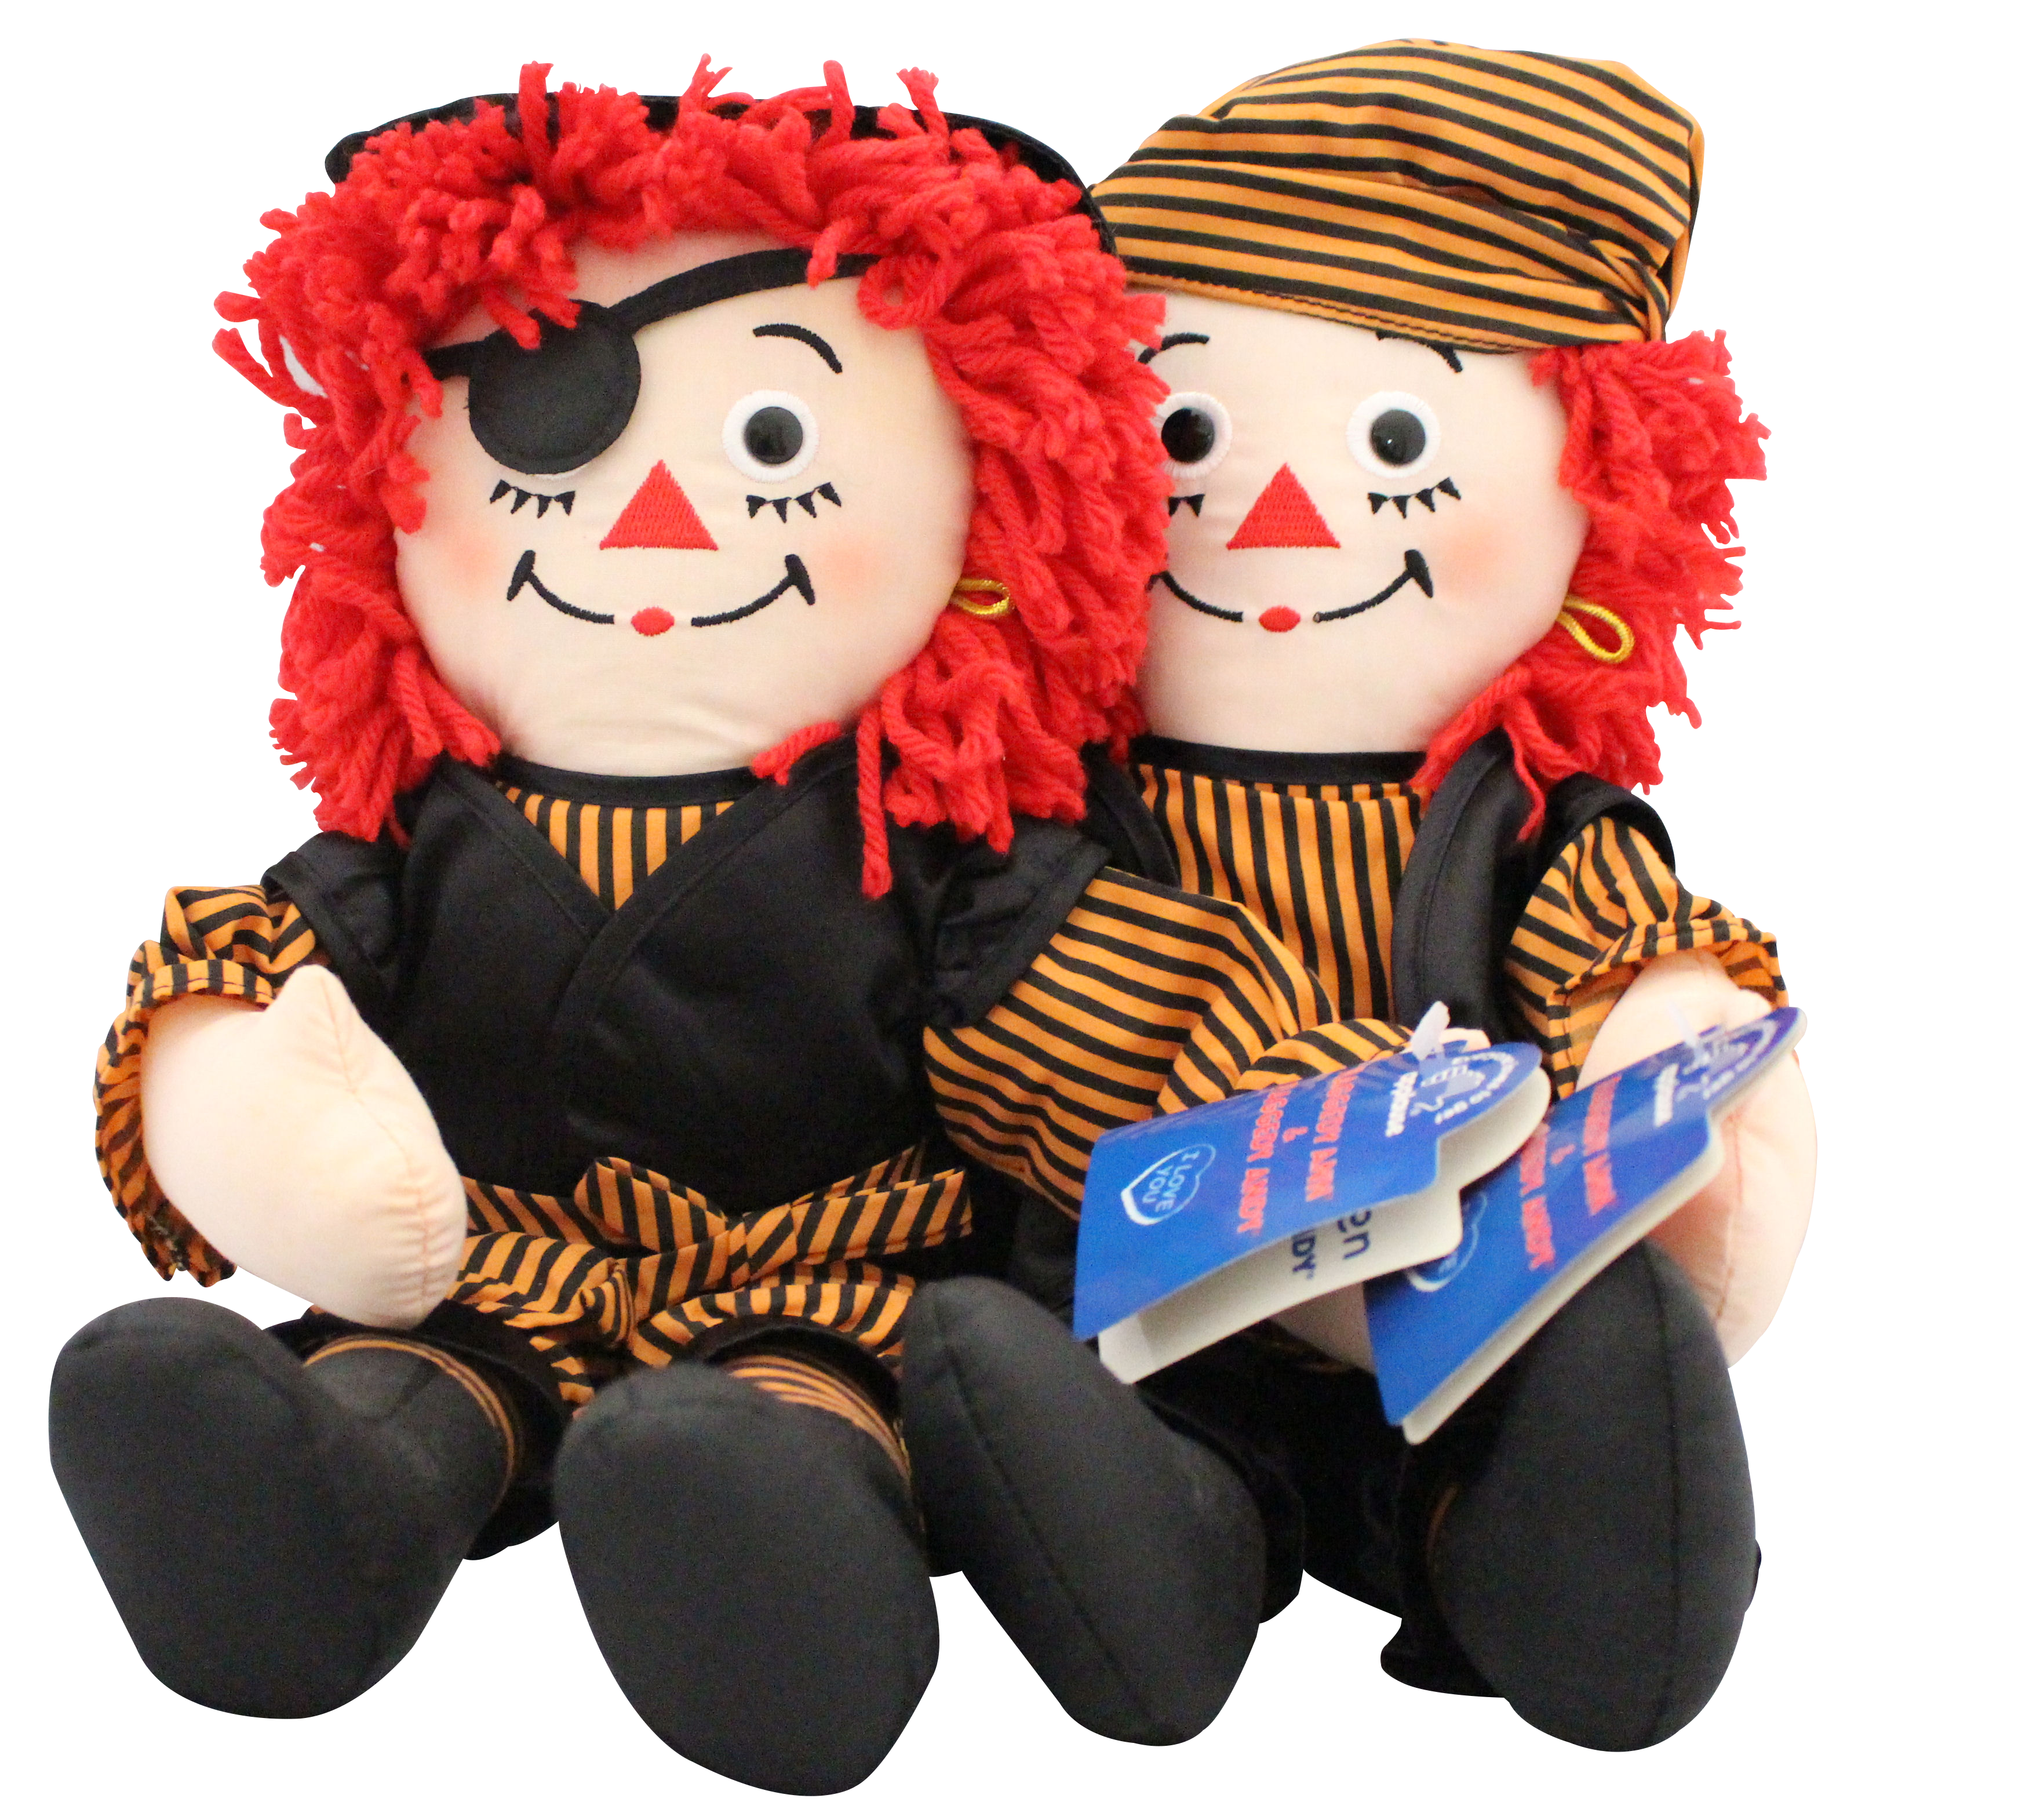 cuddly collectibles halloween raggedy ann and andy rag dolls